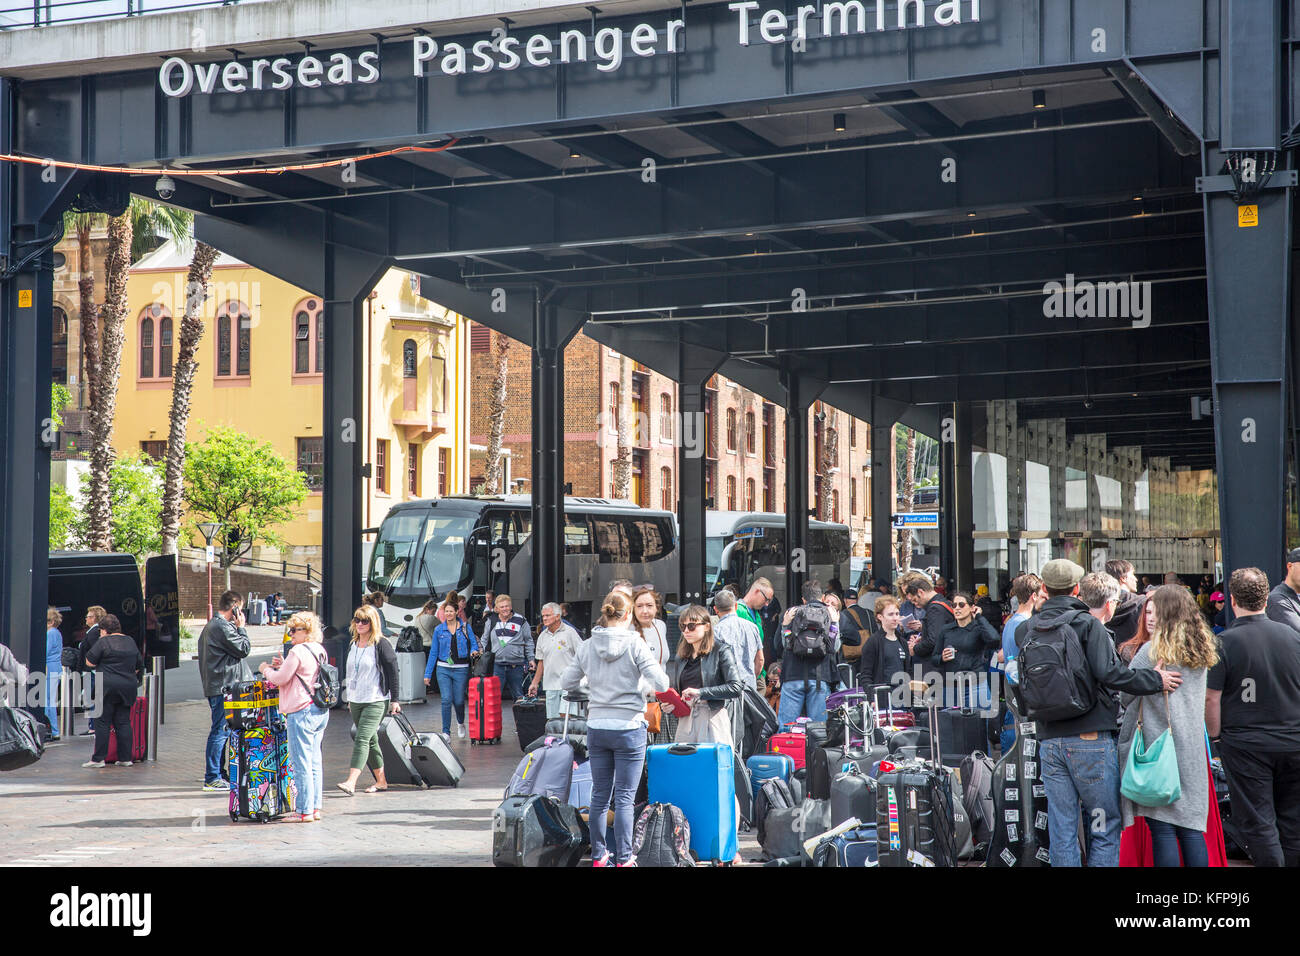 Passengers with luggage after disembarking a cruise ship at the Overseas Passenger Terminal in Sydney Circular Quay,Sydney,Australia - Stock Image